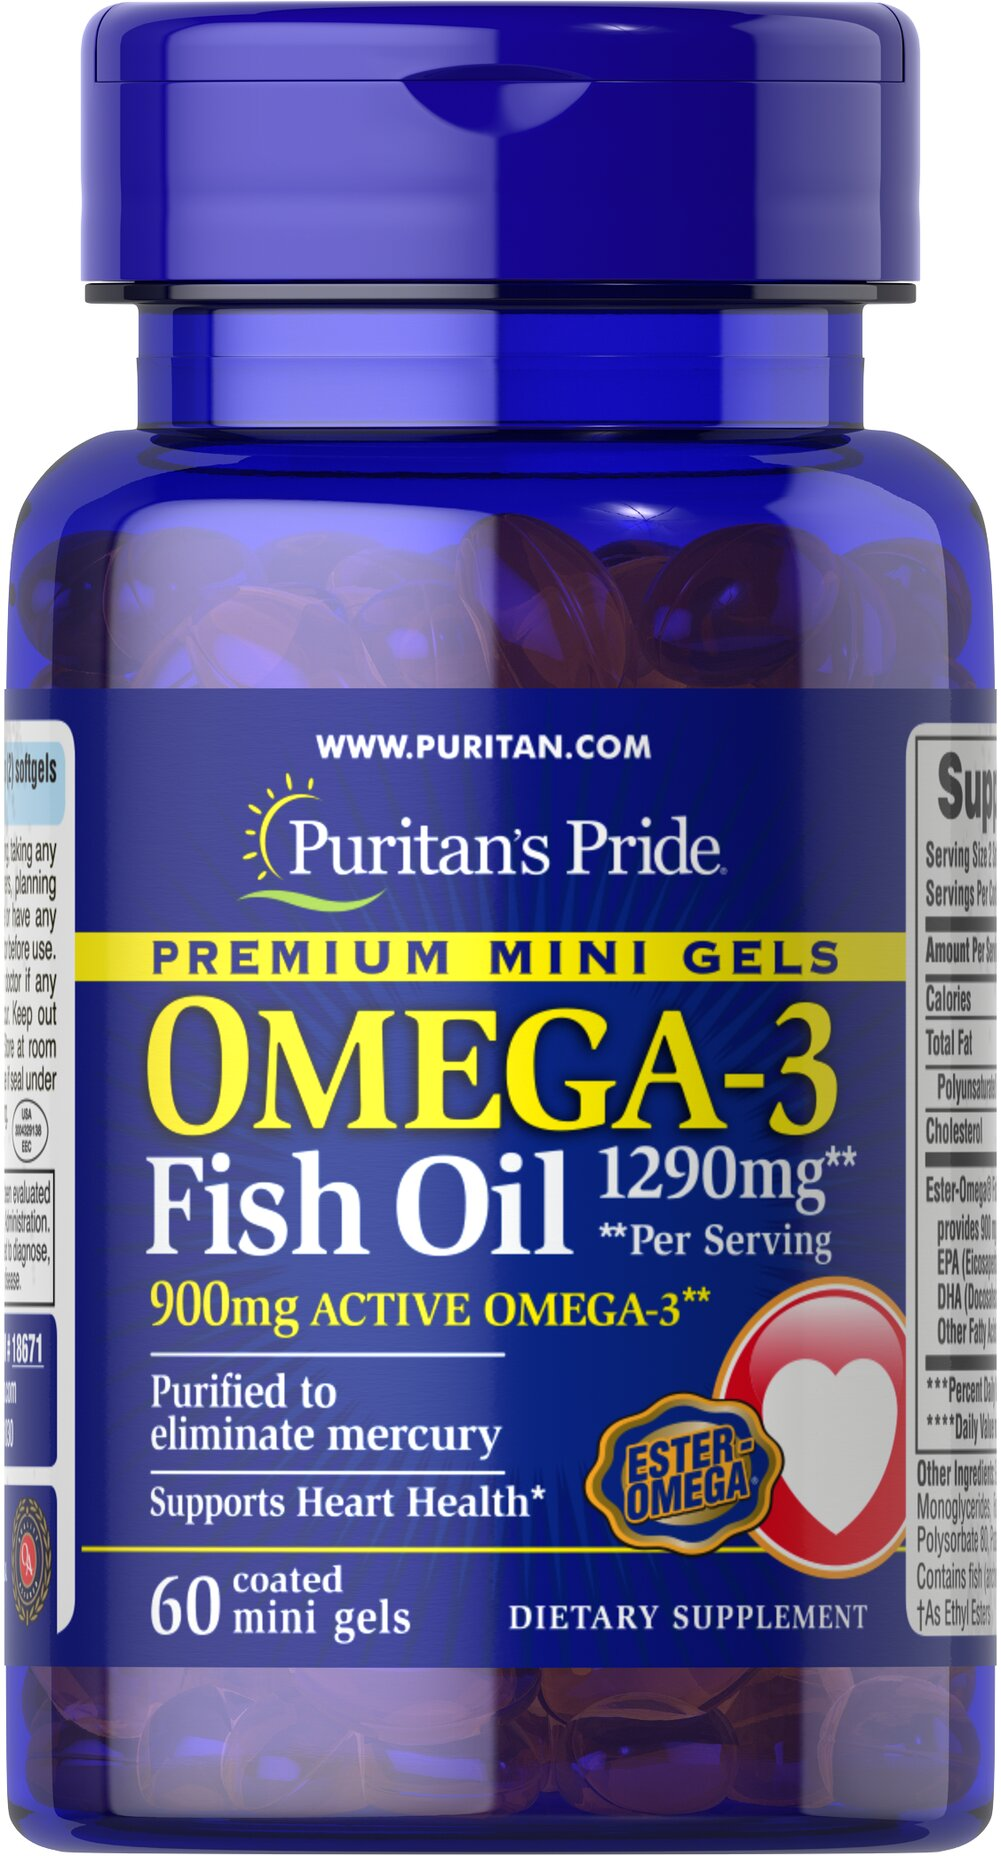 Omega-3 Fish Oil 645 mg Mini Gels (450 mg Active Omega-3) <p><strong>Purified to Eliminate Mercury</strong></p><p>Enhanced with 900 mg of active Omega-3 per serving</p><p>Mercury free mini gels are coated to prevent fishy aftertaste</p> 60 Coated Softgels 645 mg $14.39